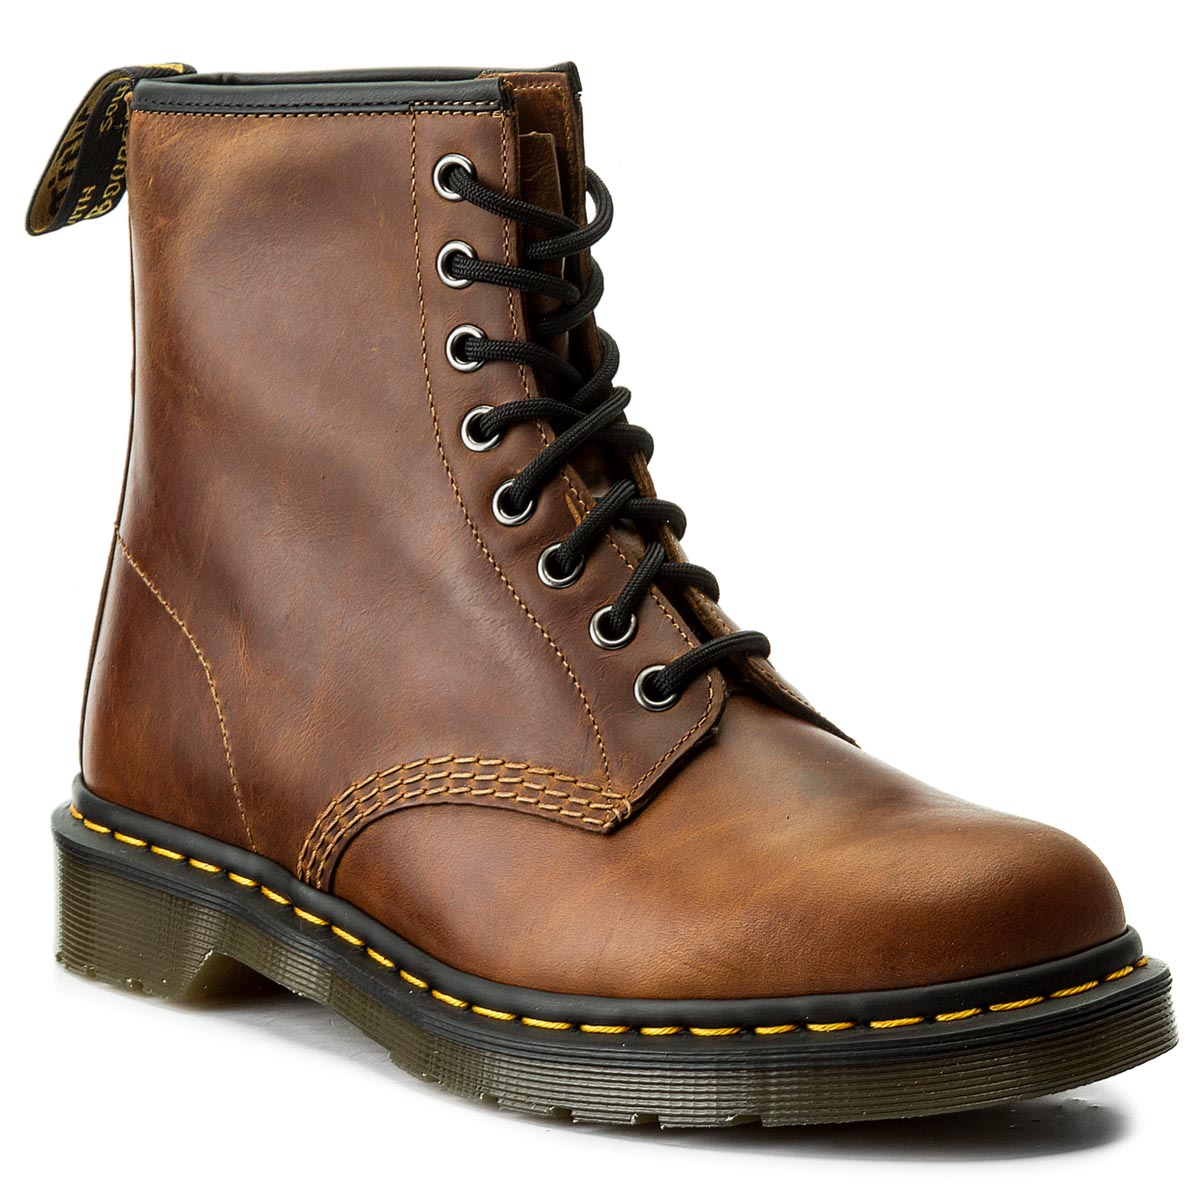 Glany DR. MARTENS - 1460 22828243 Butterscotch